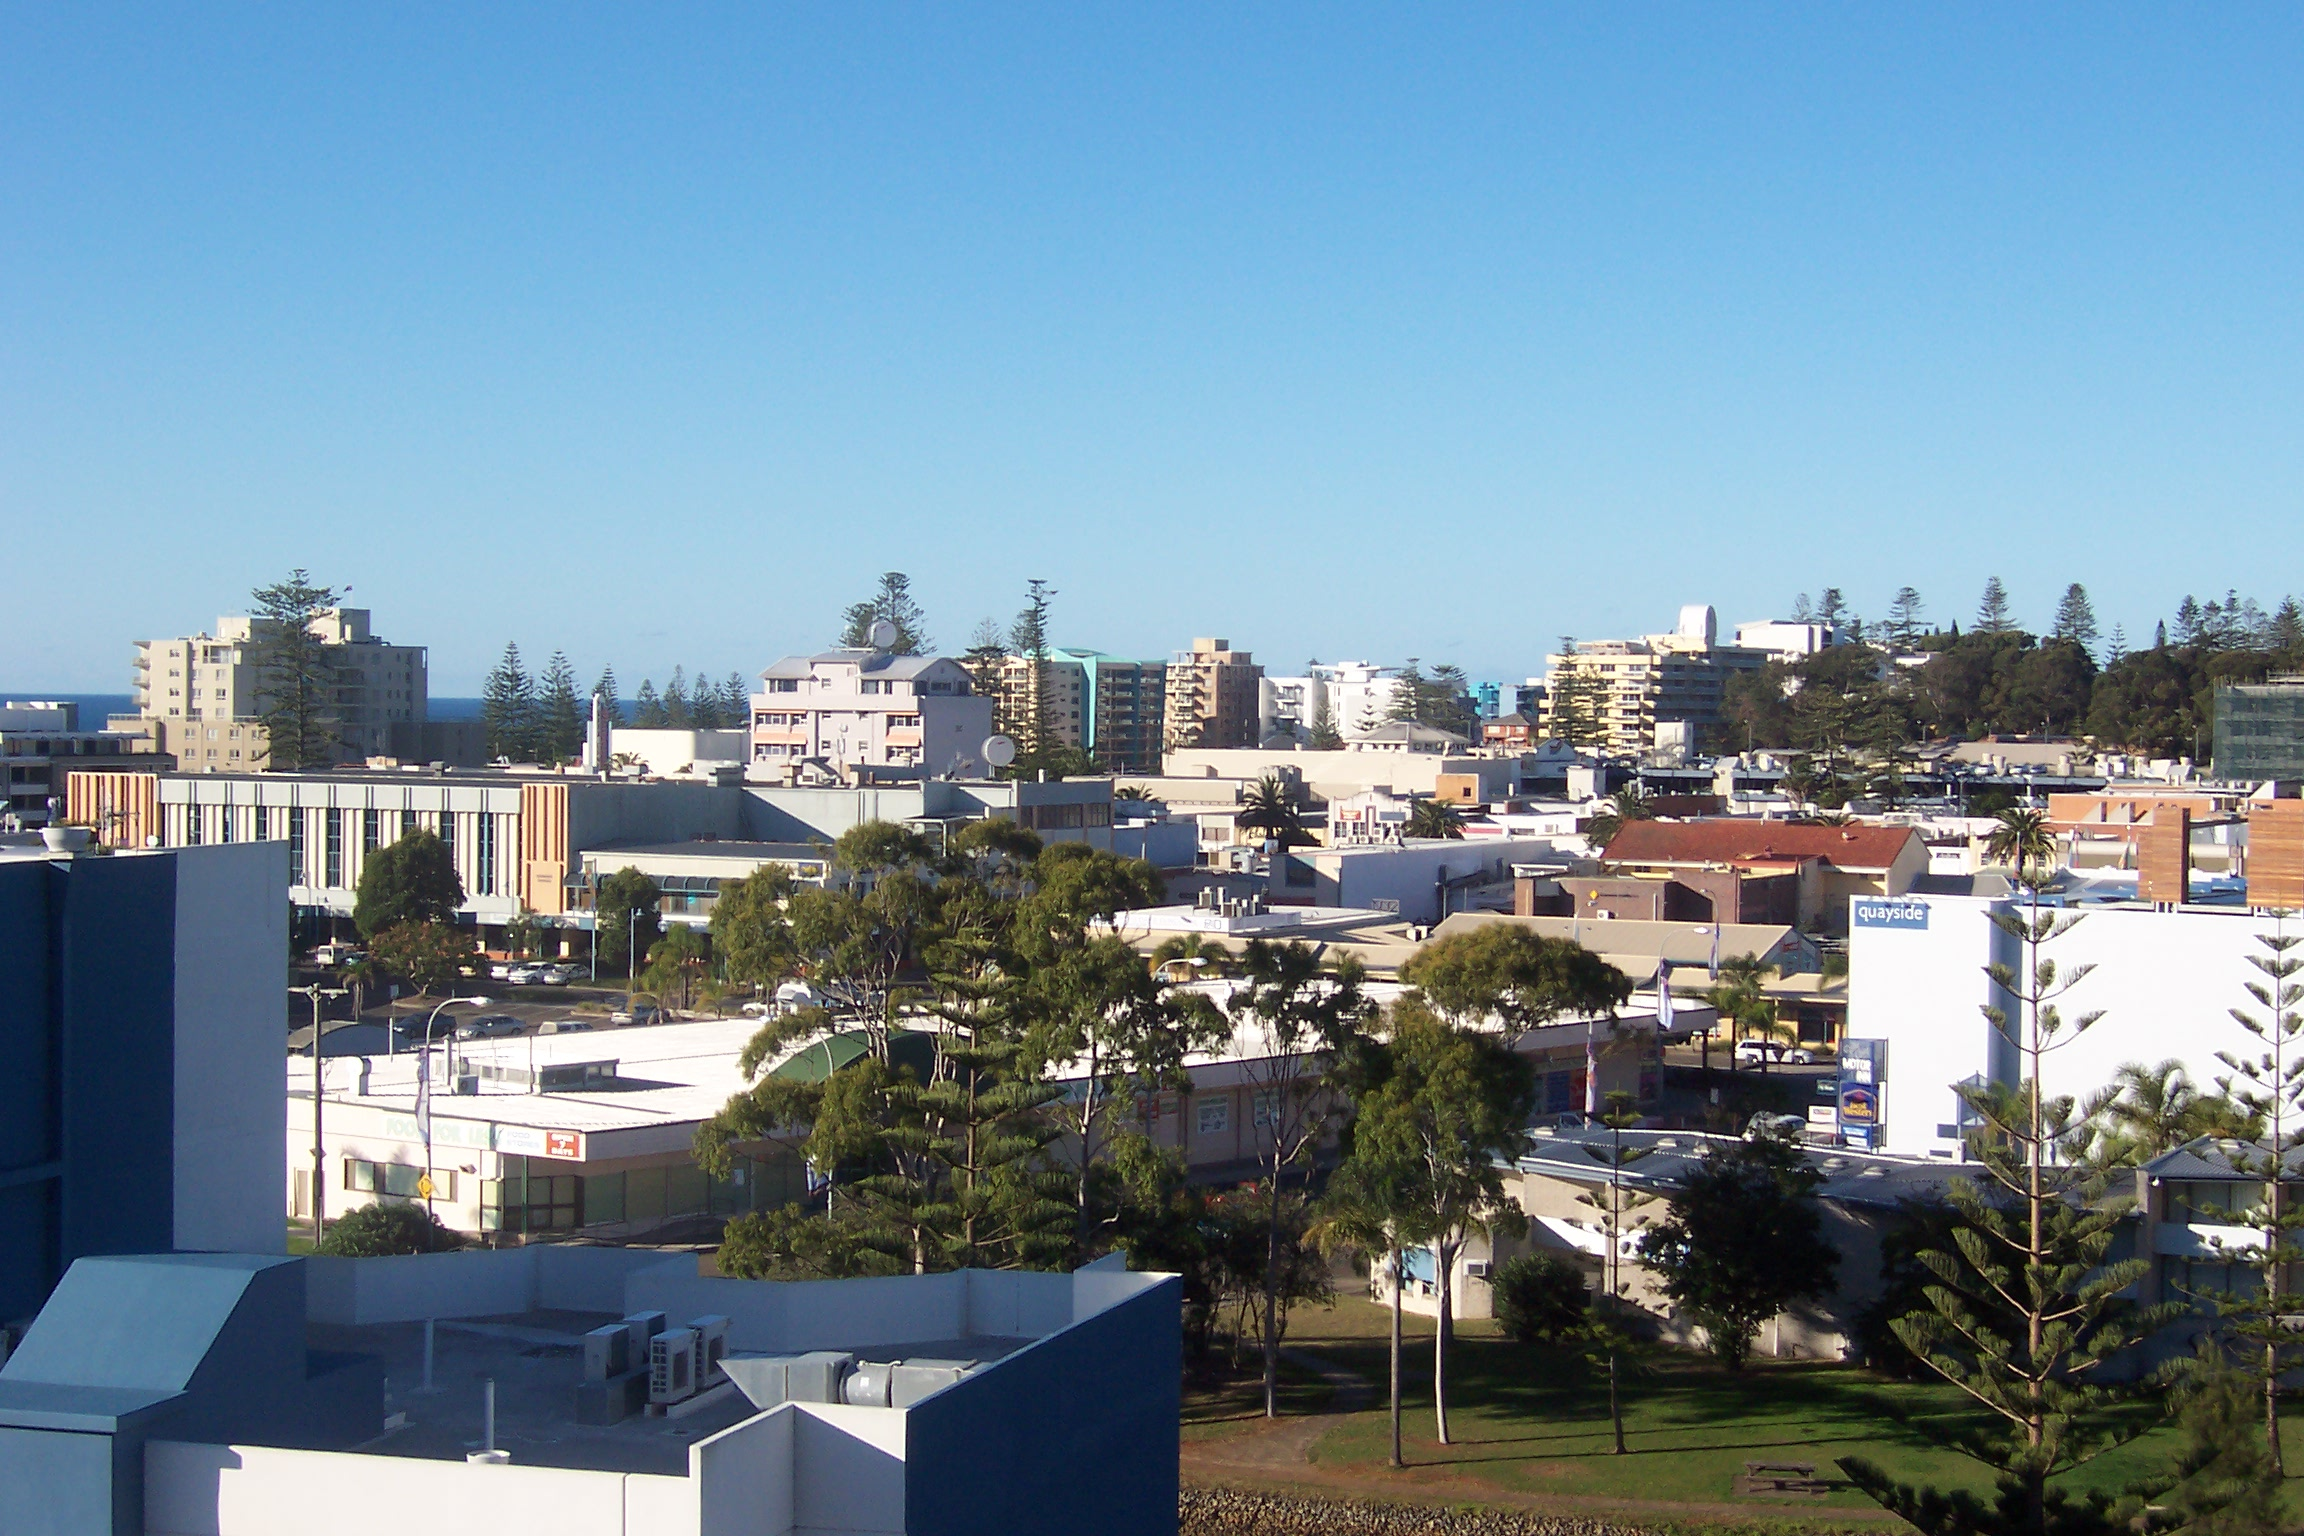 Port Macquarie Australia  City new picture : Port Macquarie CBD in June 2007